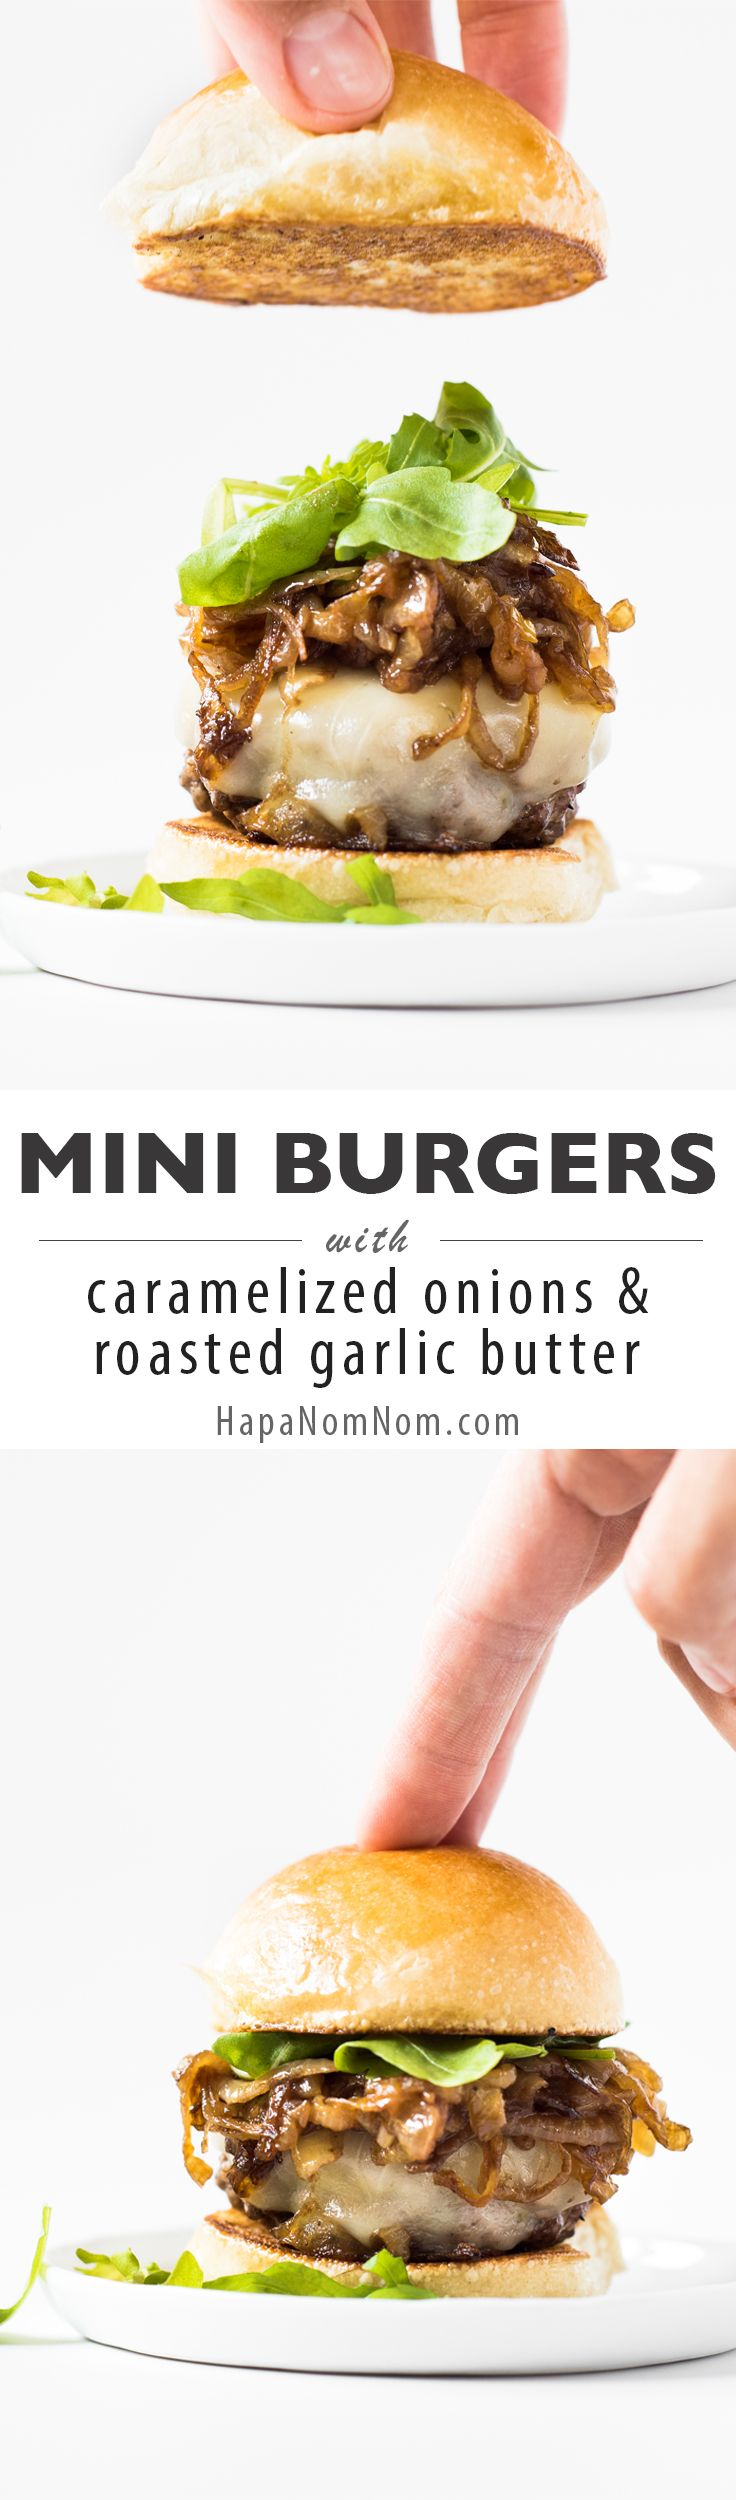 Mini Burgers with Caramelized Onions & Roasted Garlic Butter